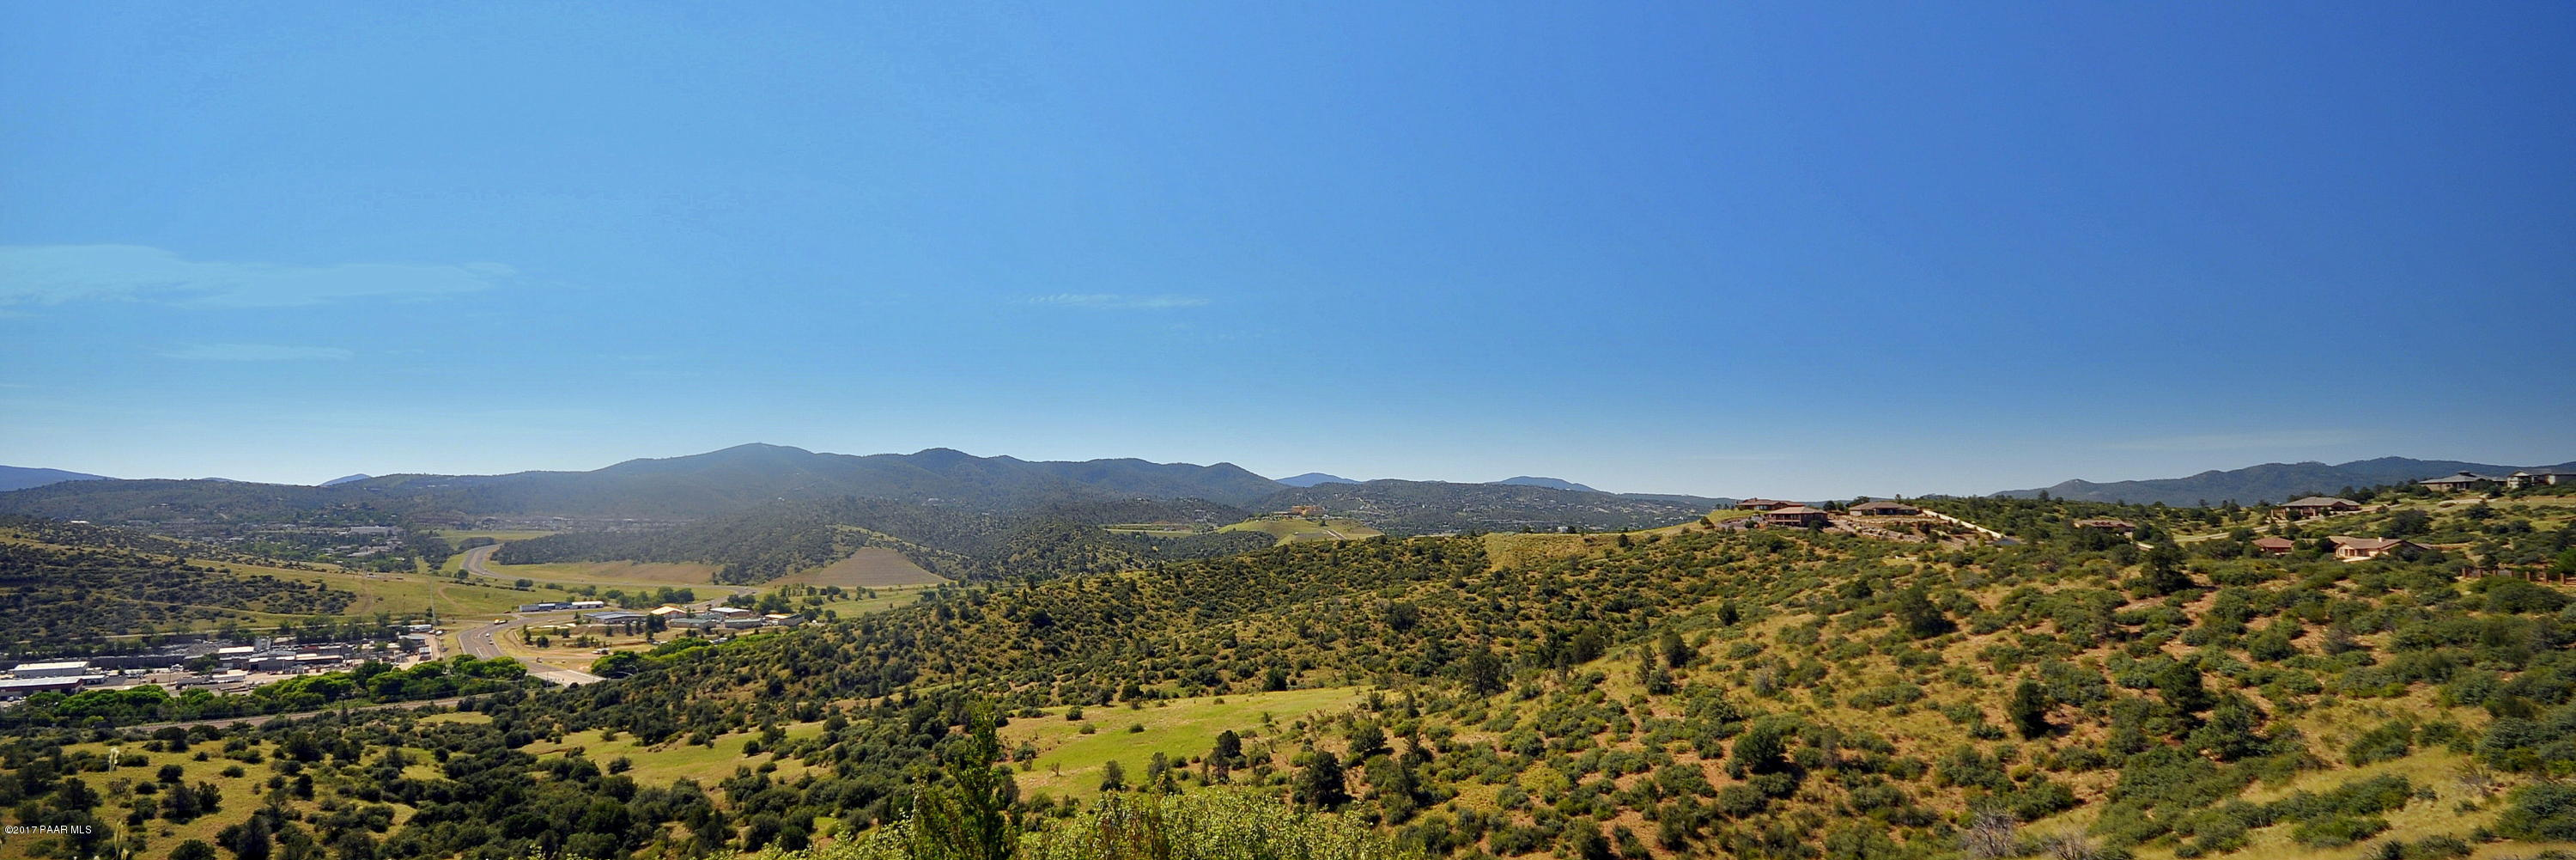 1603 Cool Breezes Lane Prescott, AZ 86301 - MLS #: 1013502